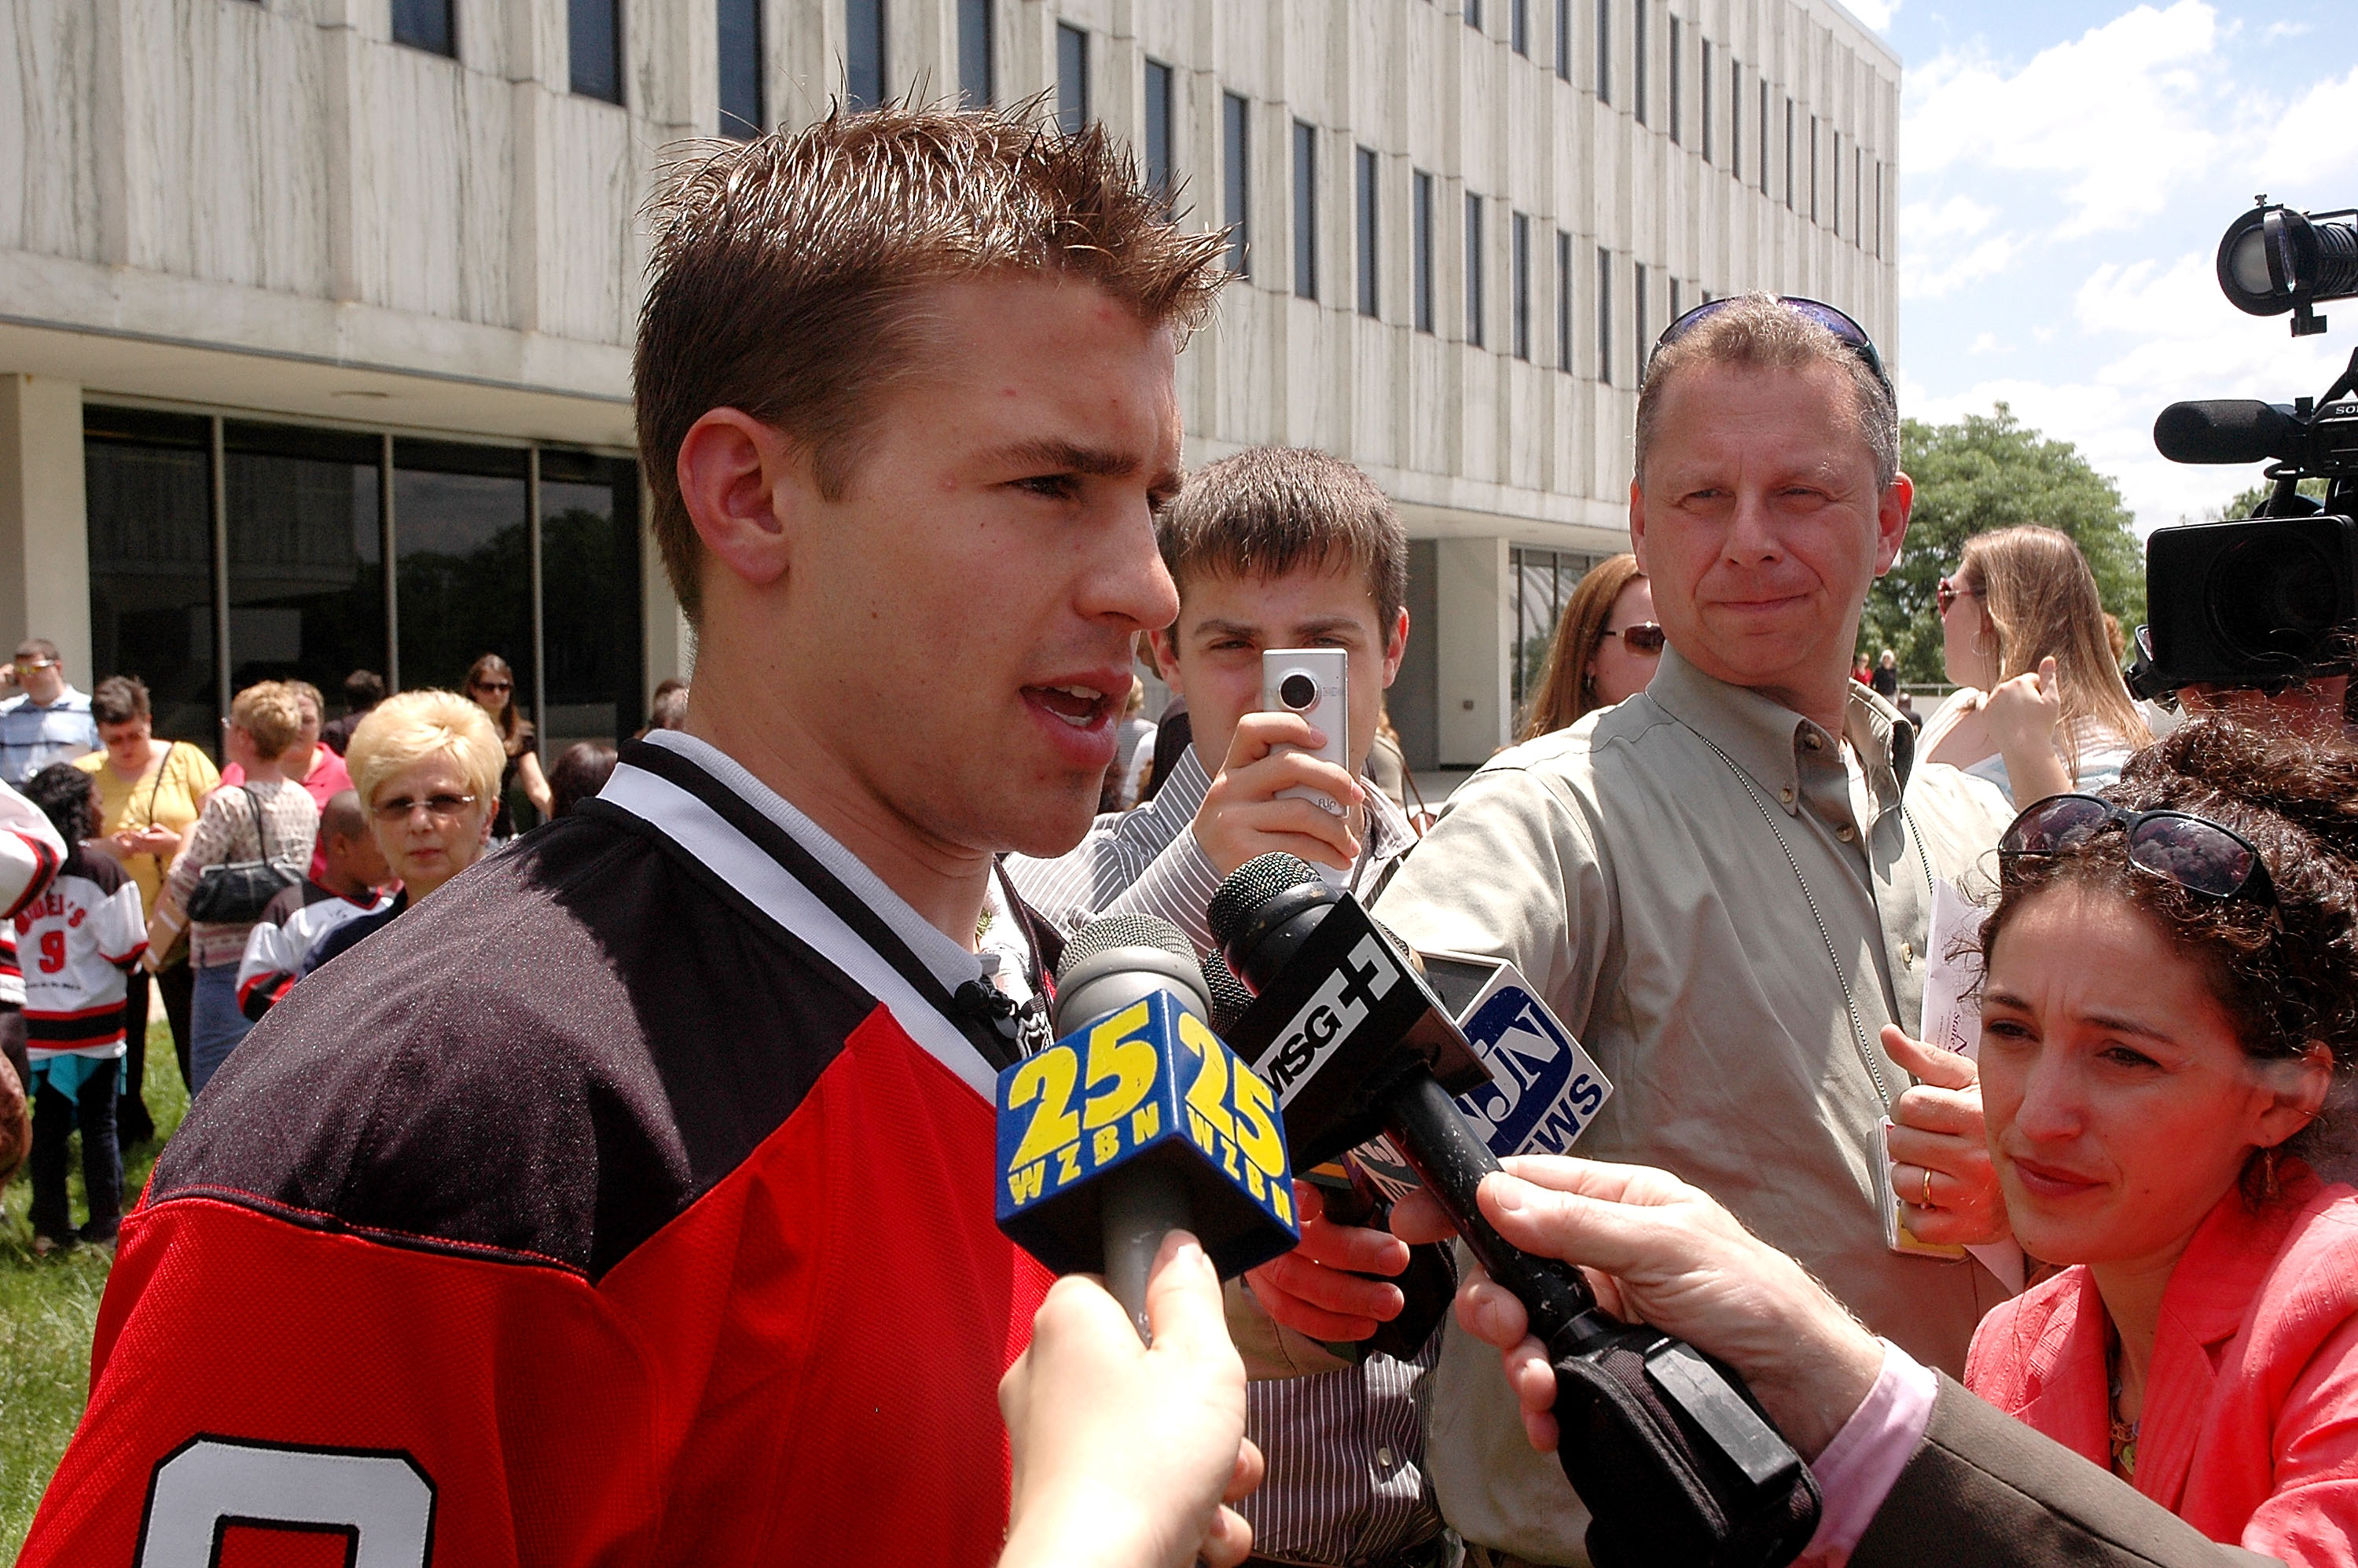 TRENTON, NJ - MAY 25: New Jersey Devils forward Zach Parise is interviewed by the media during Zach Parise Reads to Students at the State Library on May 25, 2010 in Trenton, New Jersey. (Photo by Andy Marlin/Getty Images for the New Jersey Devils)